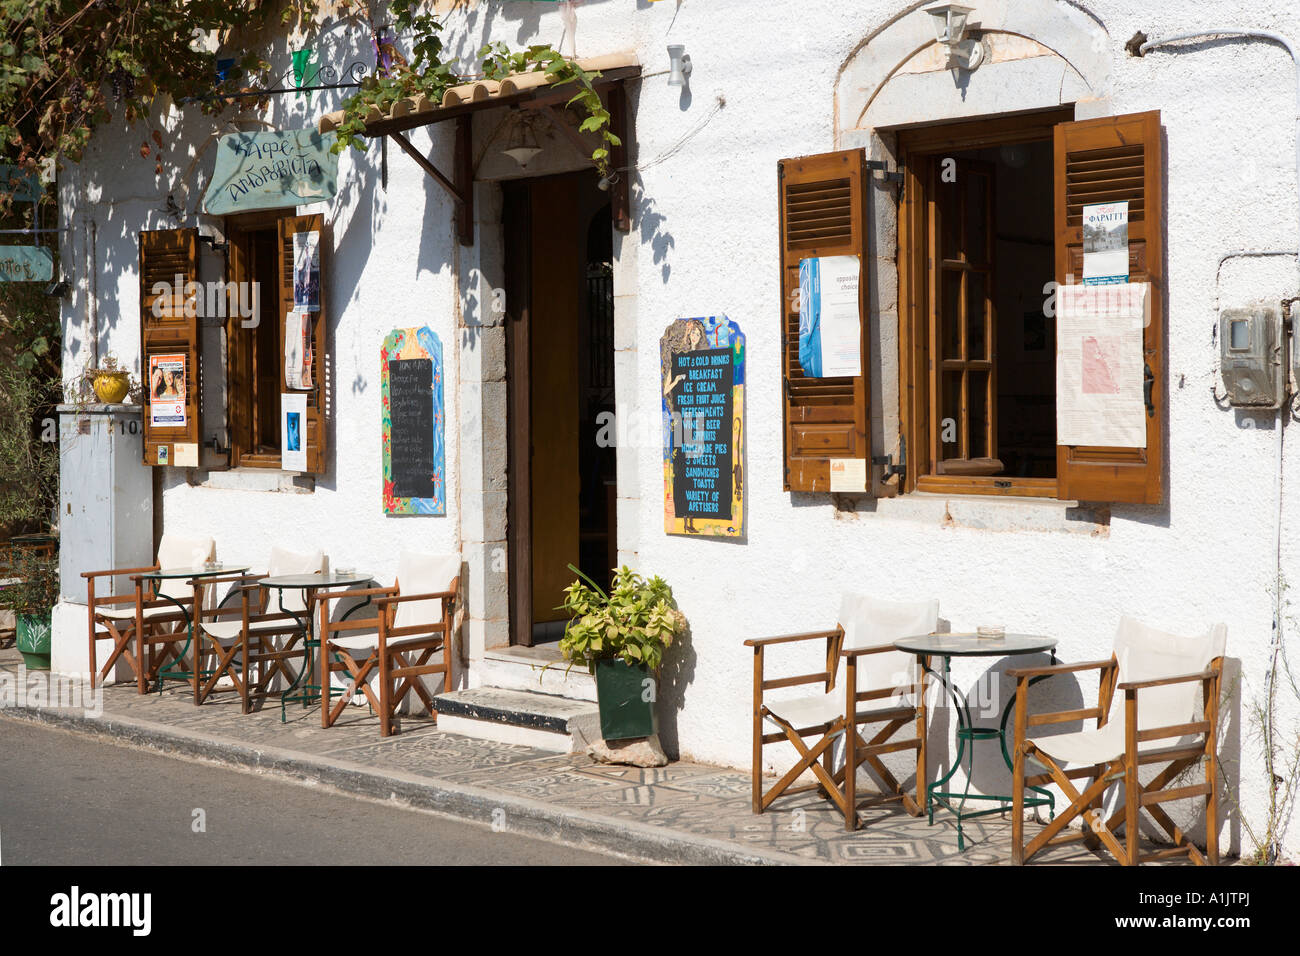 Greek taverna on the main street, Kardamyli,The Mani peninsula, Peloponnese, Greece - Stock Image